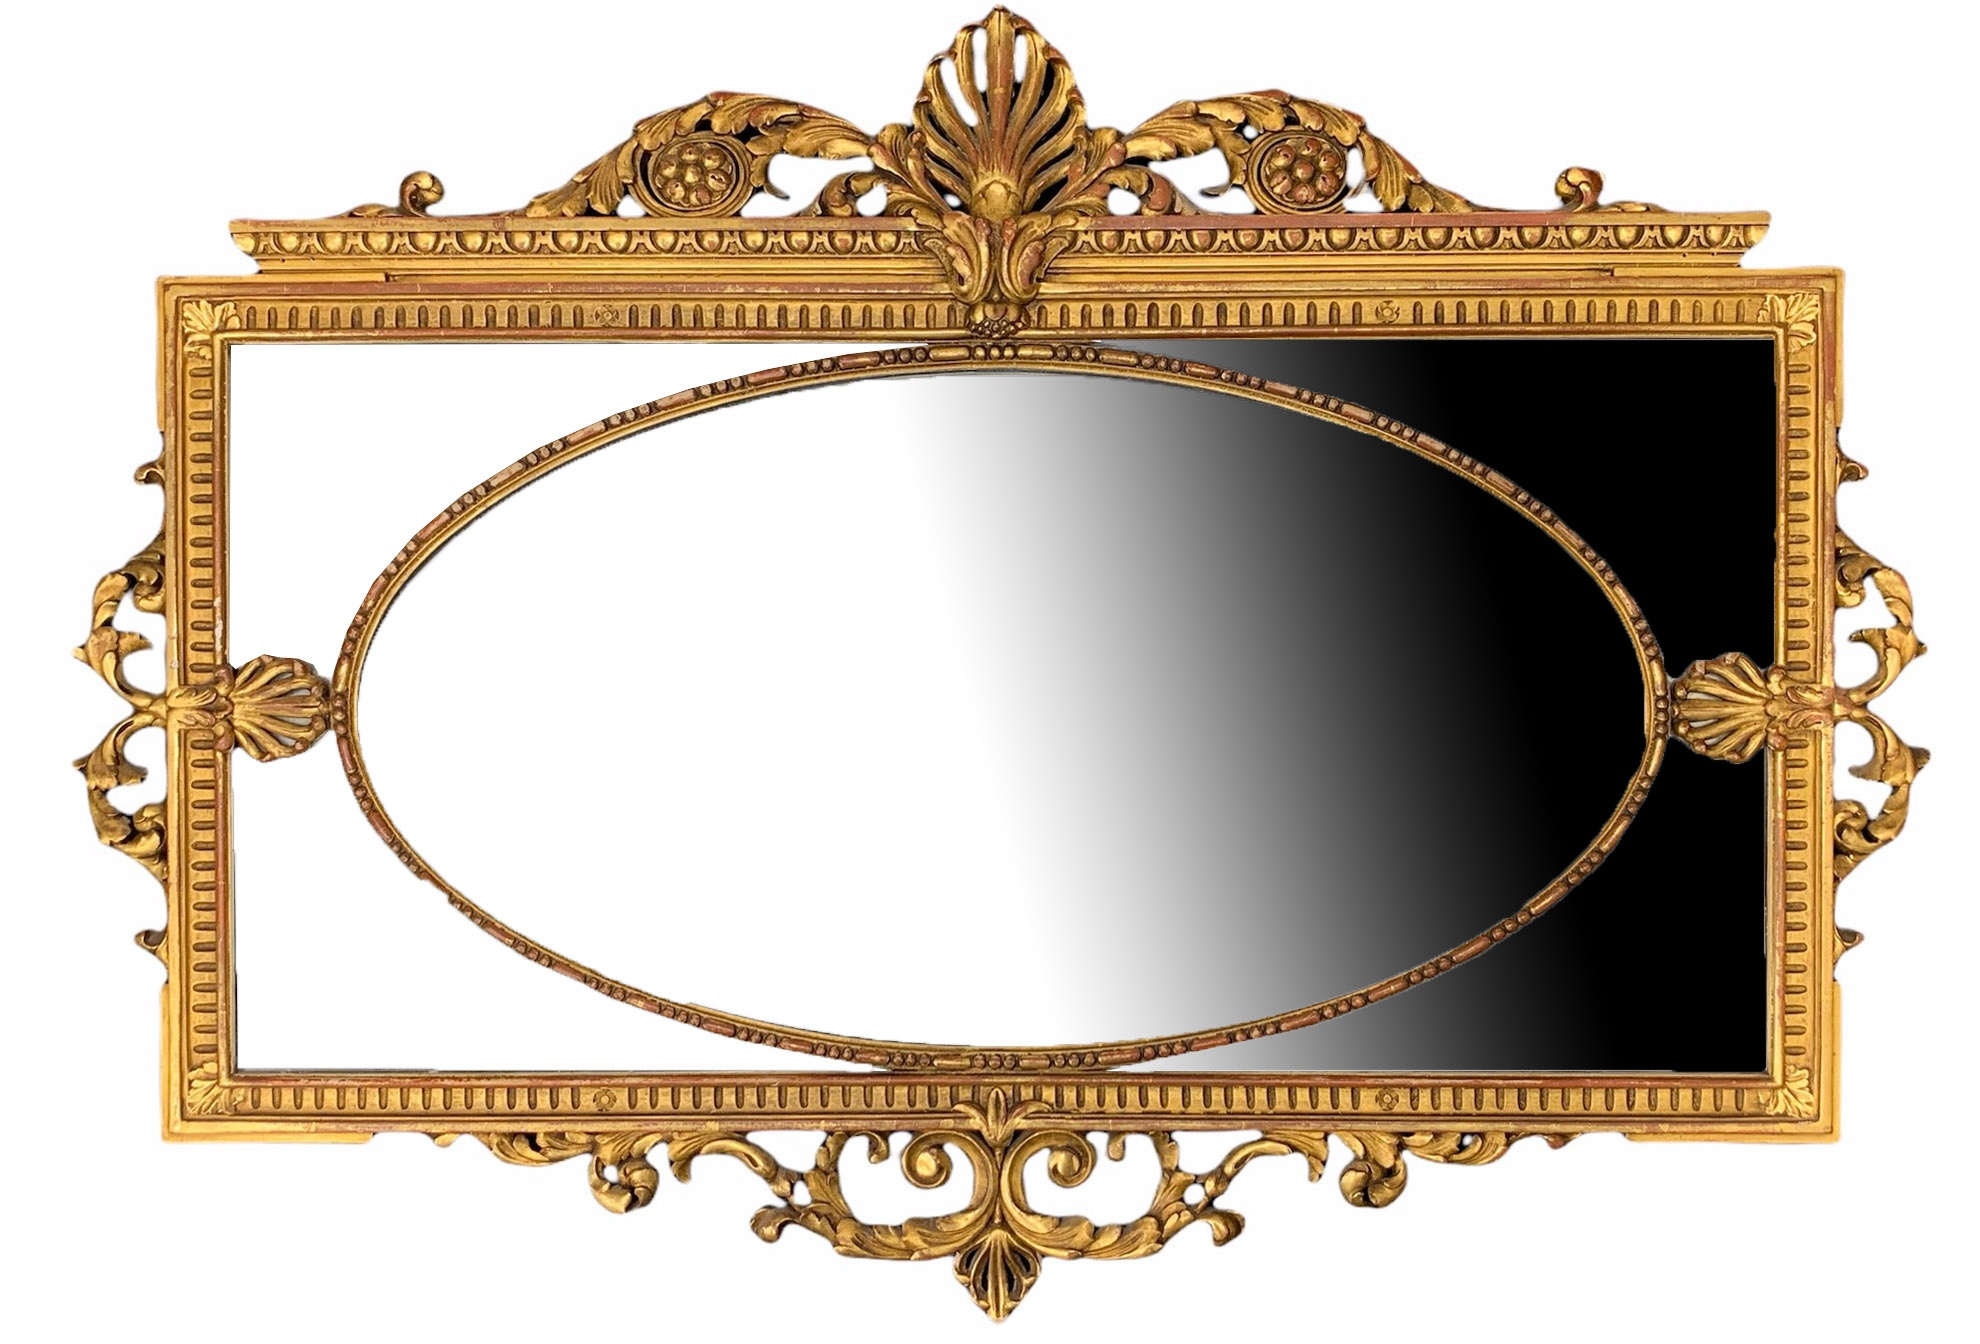 MANNER OF ROBERT ADAM, A LATE 19TH CENTURY CARVED GILTWOOD MIRROR Decorated with scrolling